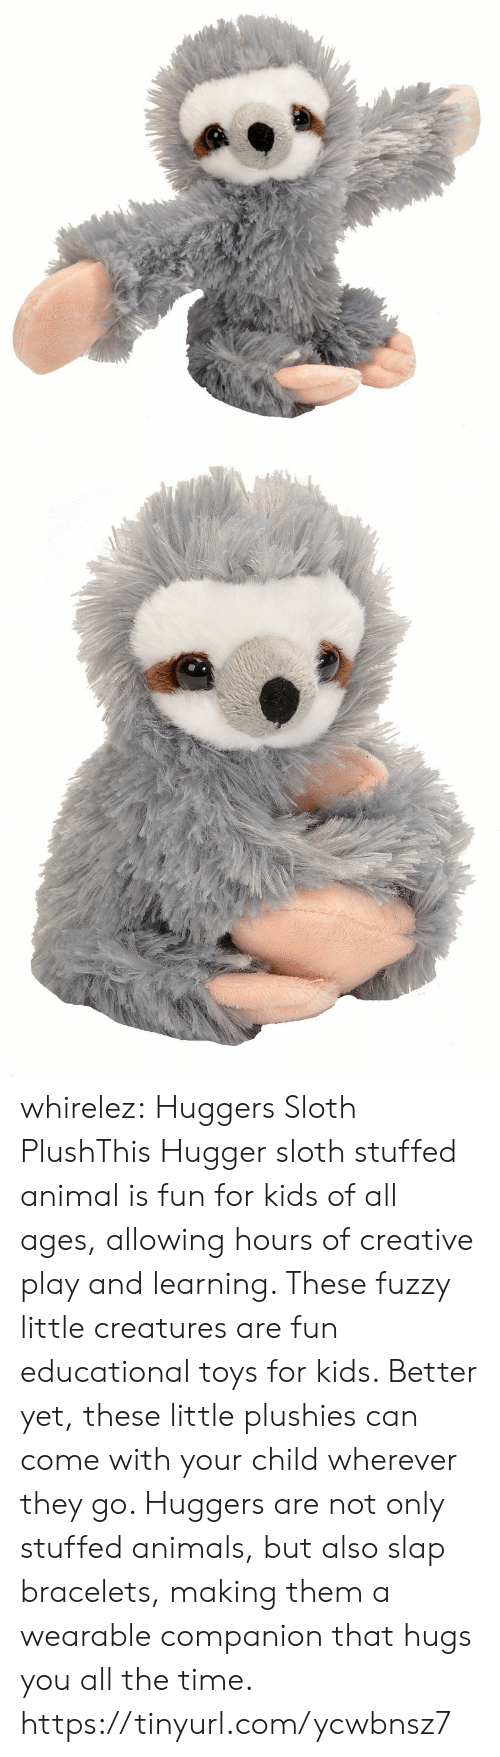 stuffed animal: whirelez:  Huggers Sloth PlushThis Hugger sloth stuffed animal is fun for kids of all ages, allowing hours of creative play and learning. These fuzzy little creatures are fun educational toys for kids. Better yet, these little plushies can come with your child wherever they go. Huggers are not only stuffed animals, but also slap bracelets, making them a wearable companion that hugs you all the time. https://tinyurl.com/ycwbnsz7